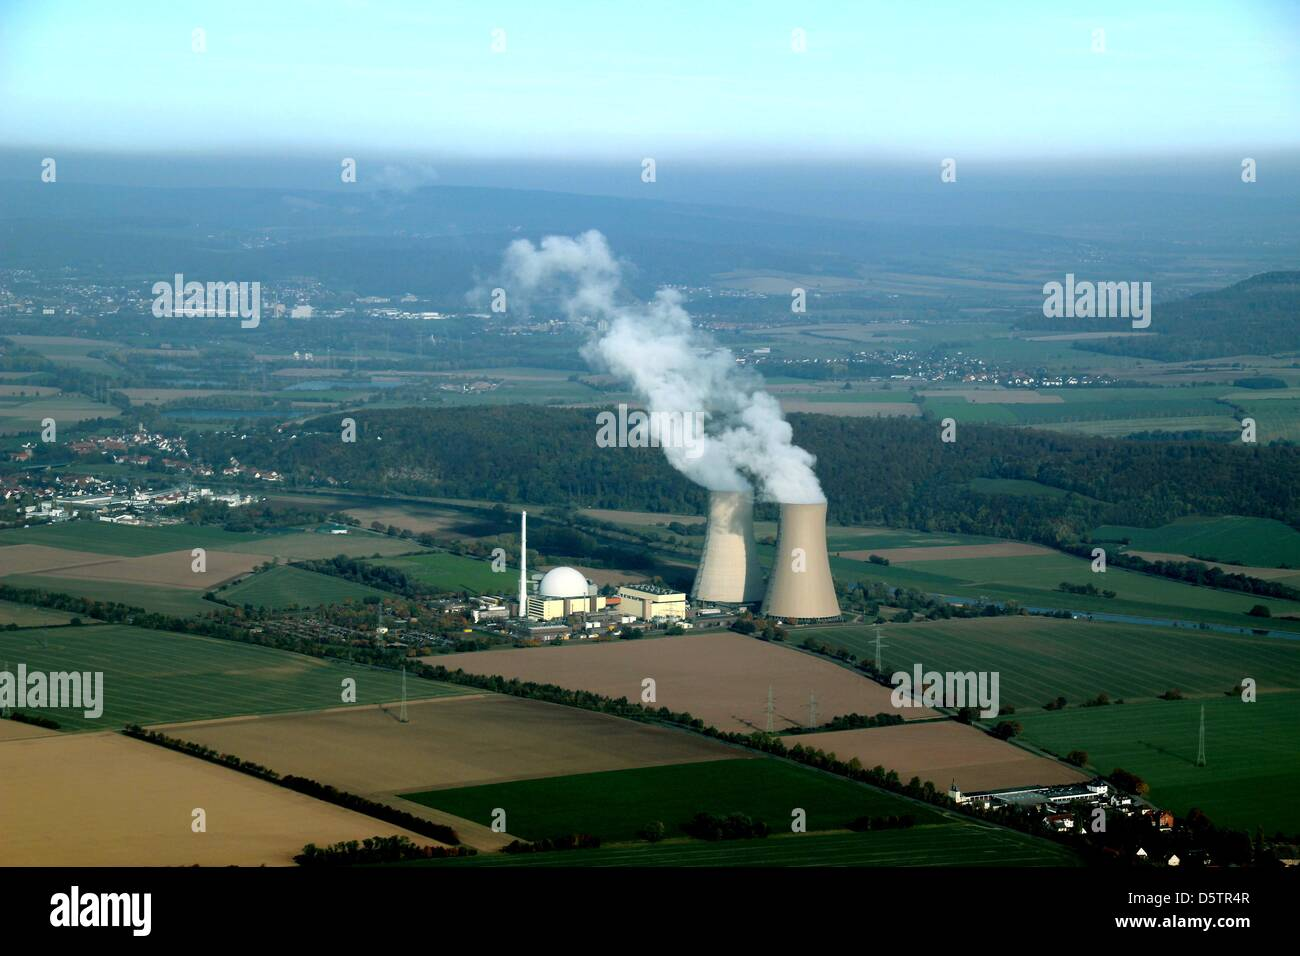 Aerial view of the nuclear power plant Grohnde in Emmerthal, Germany, 08 May 2012. Photo: Stefan Rampfel - Stock Image